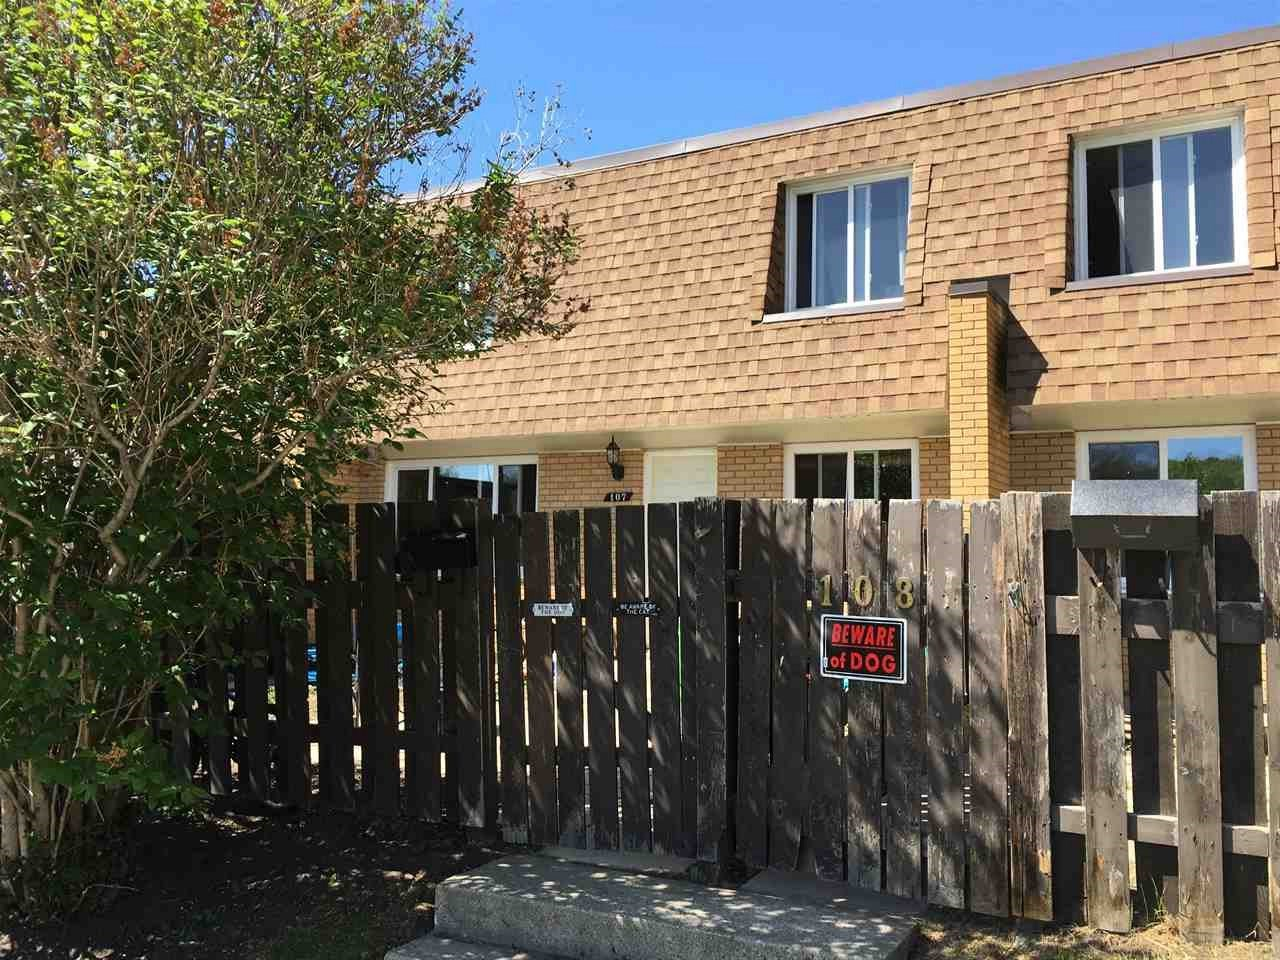 Don't Miss This Fully Renovated 2 Bedroom, 2 Bathroom Townhome Featuring Upgraded Kitchen, Bathrooms, Doors & Light Fixtures Hardwood & Ceramic Tile Flooring. The Two Bedrooms Are Very Spacious & The Living Room & Eat In Kitchen Are A Good Size As Well. Perfectly Located Close To All Amenities Including Schools, Shopping & Public Transportation. All Appliances Are Included. Nothing To Do Here, Just Move Right In!!